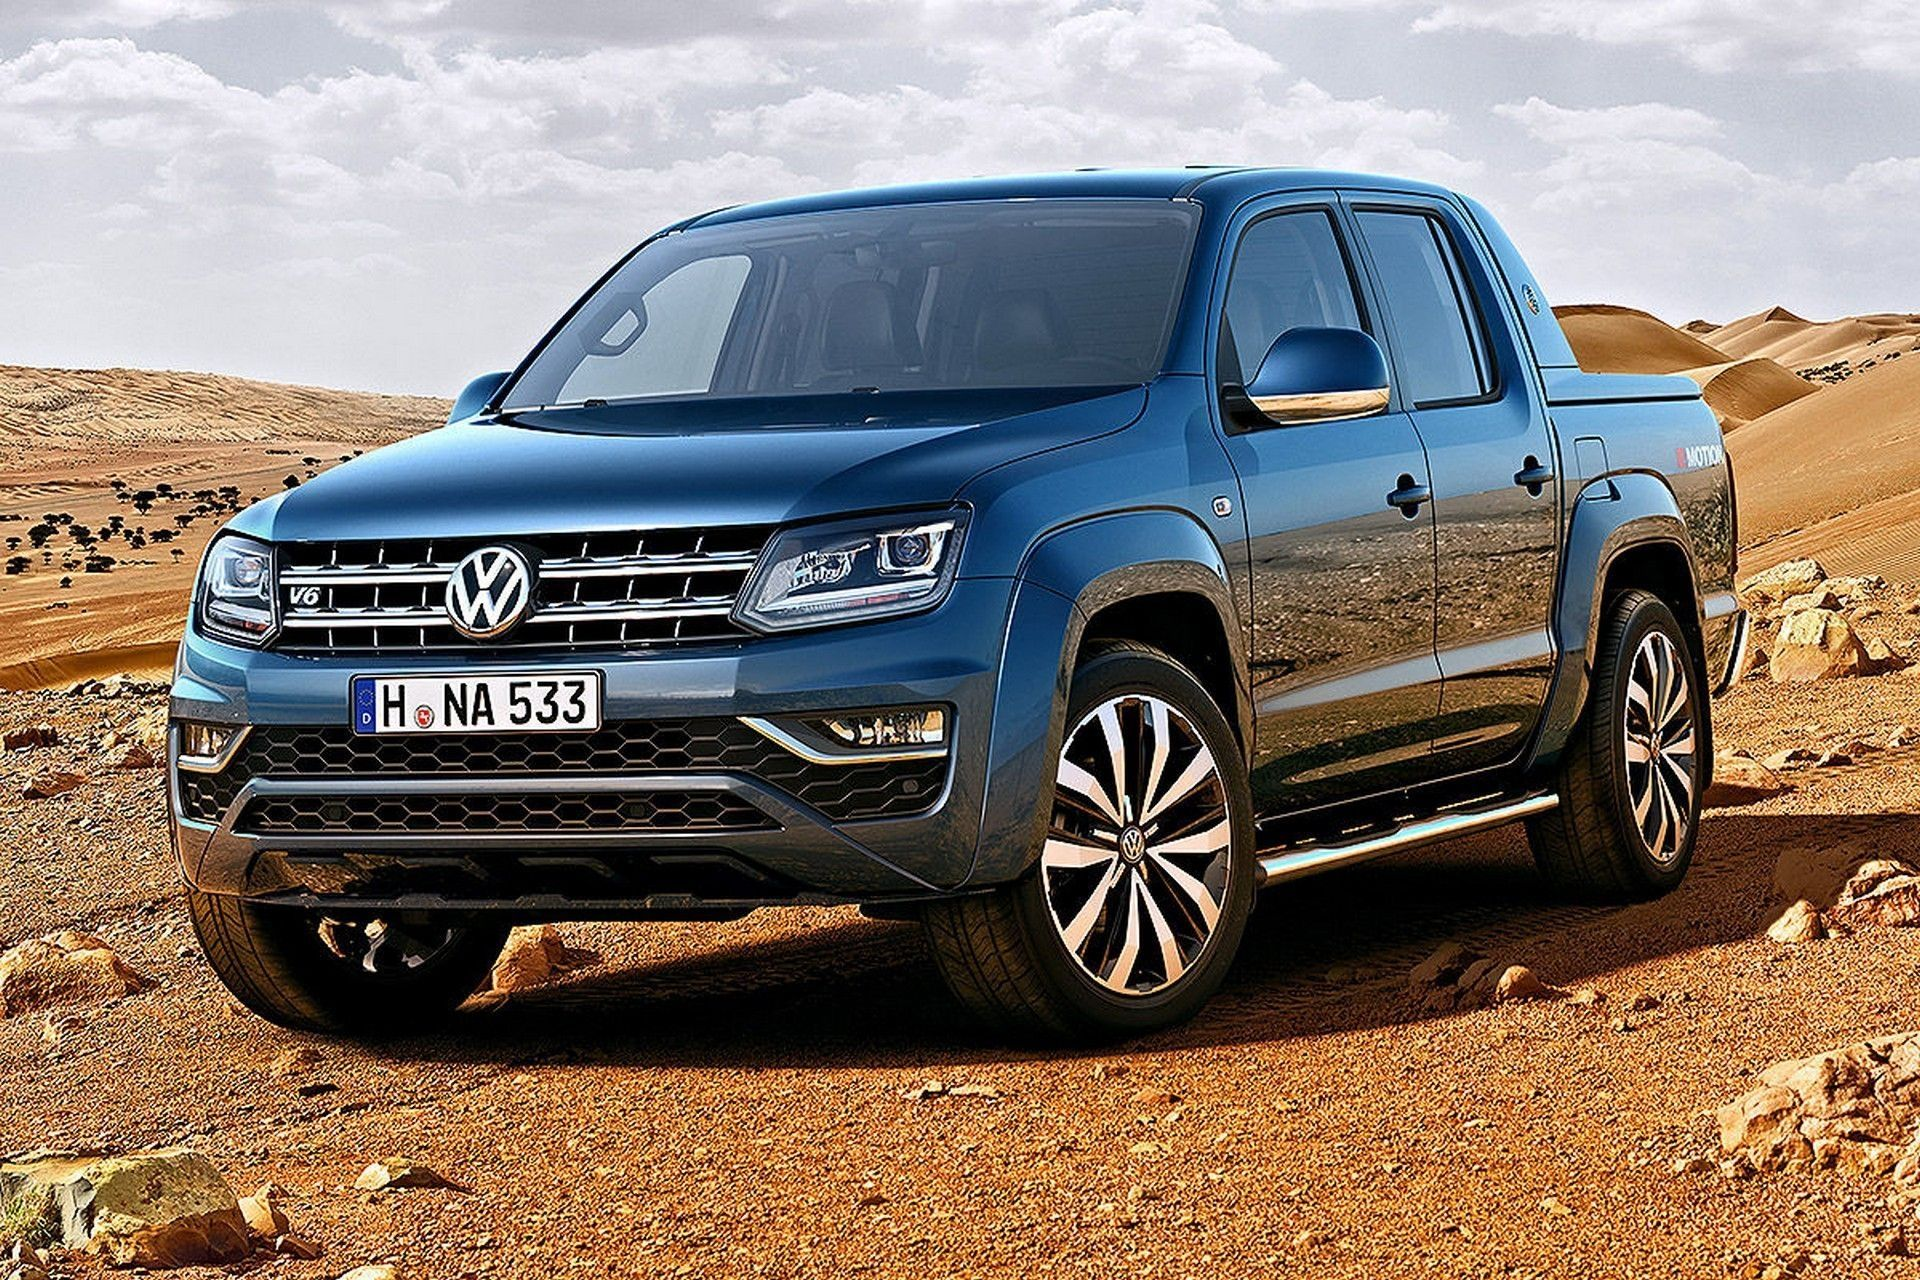 The Volkswagen Amarok 2020 Picture Release Date And Review Vw Amarok Vw Amarok V6 Volkswagen Touareg